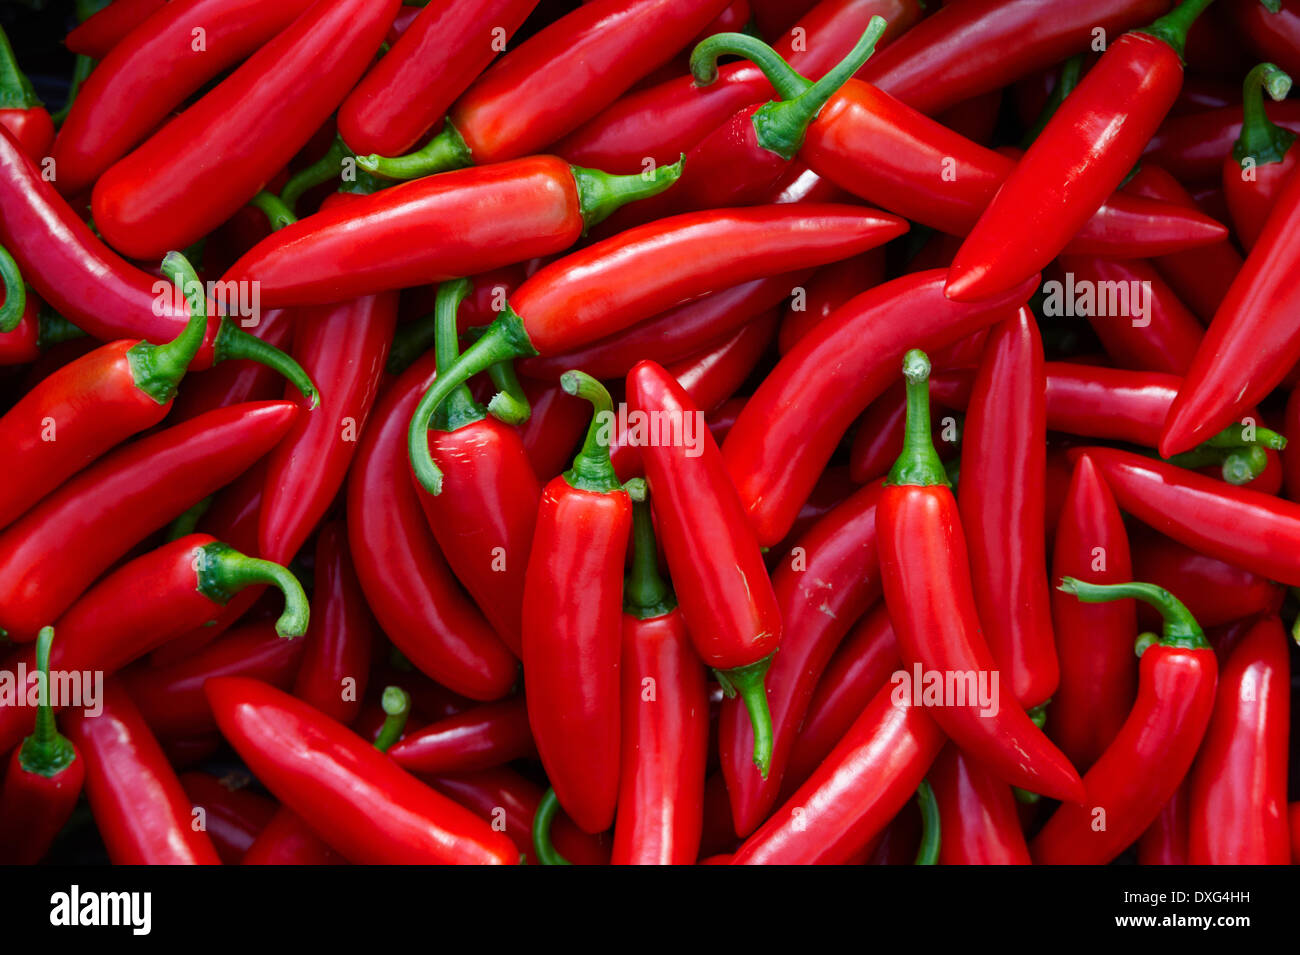 Full Frame Of Red Chilli Peppers - Stock Image